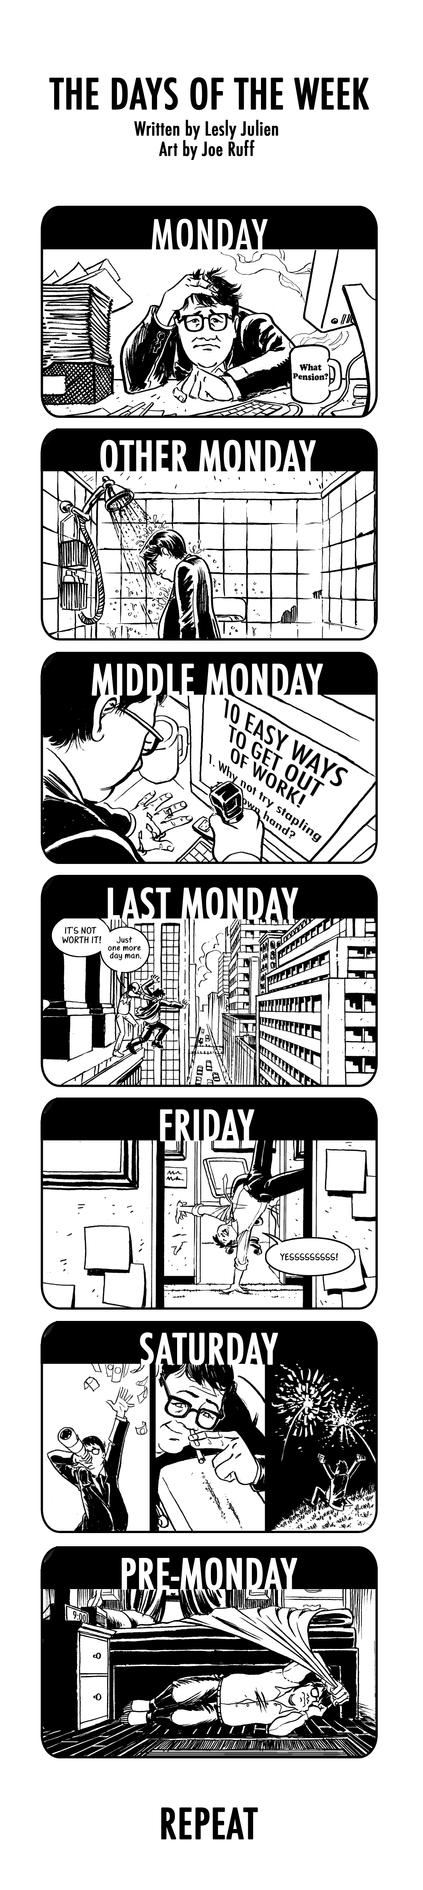 The Days of The Week by JoeRuff